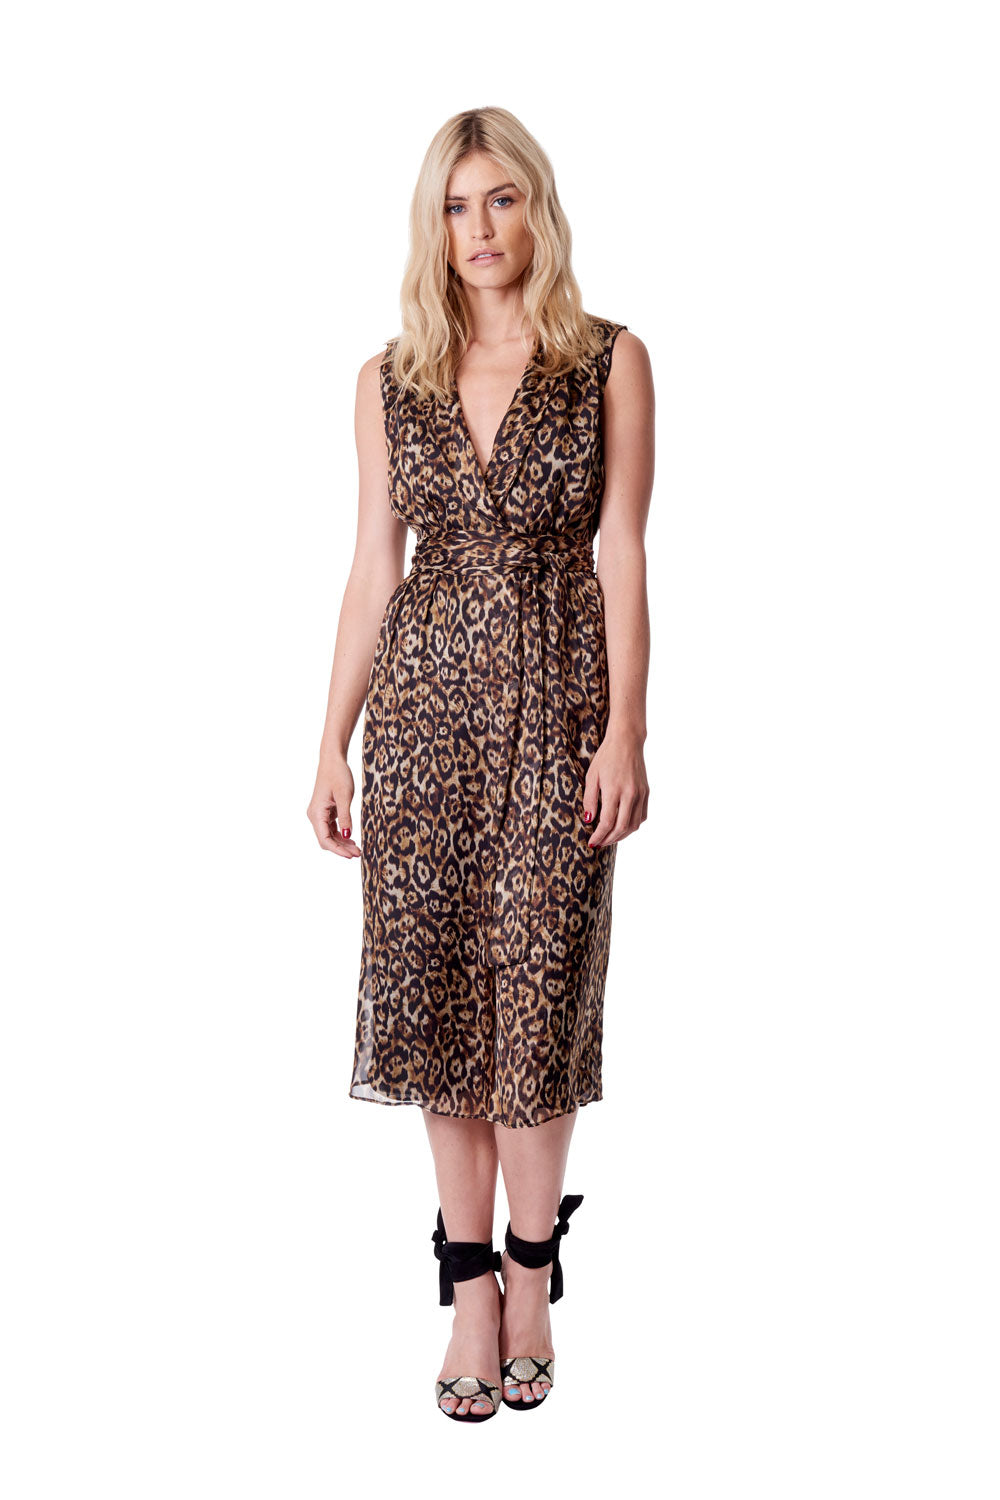 Queen of the Jungle Slv'less Wrap Dress Leopard